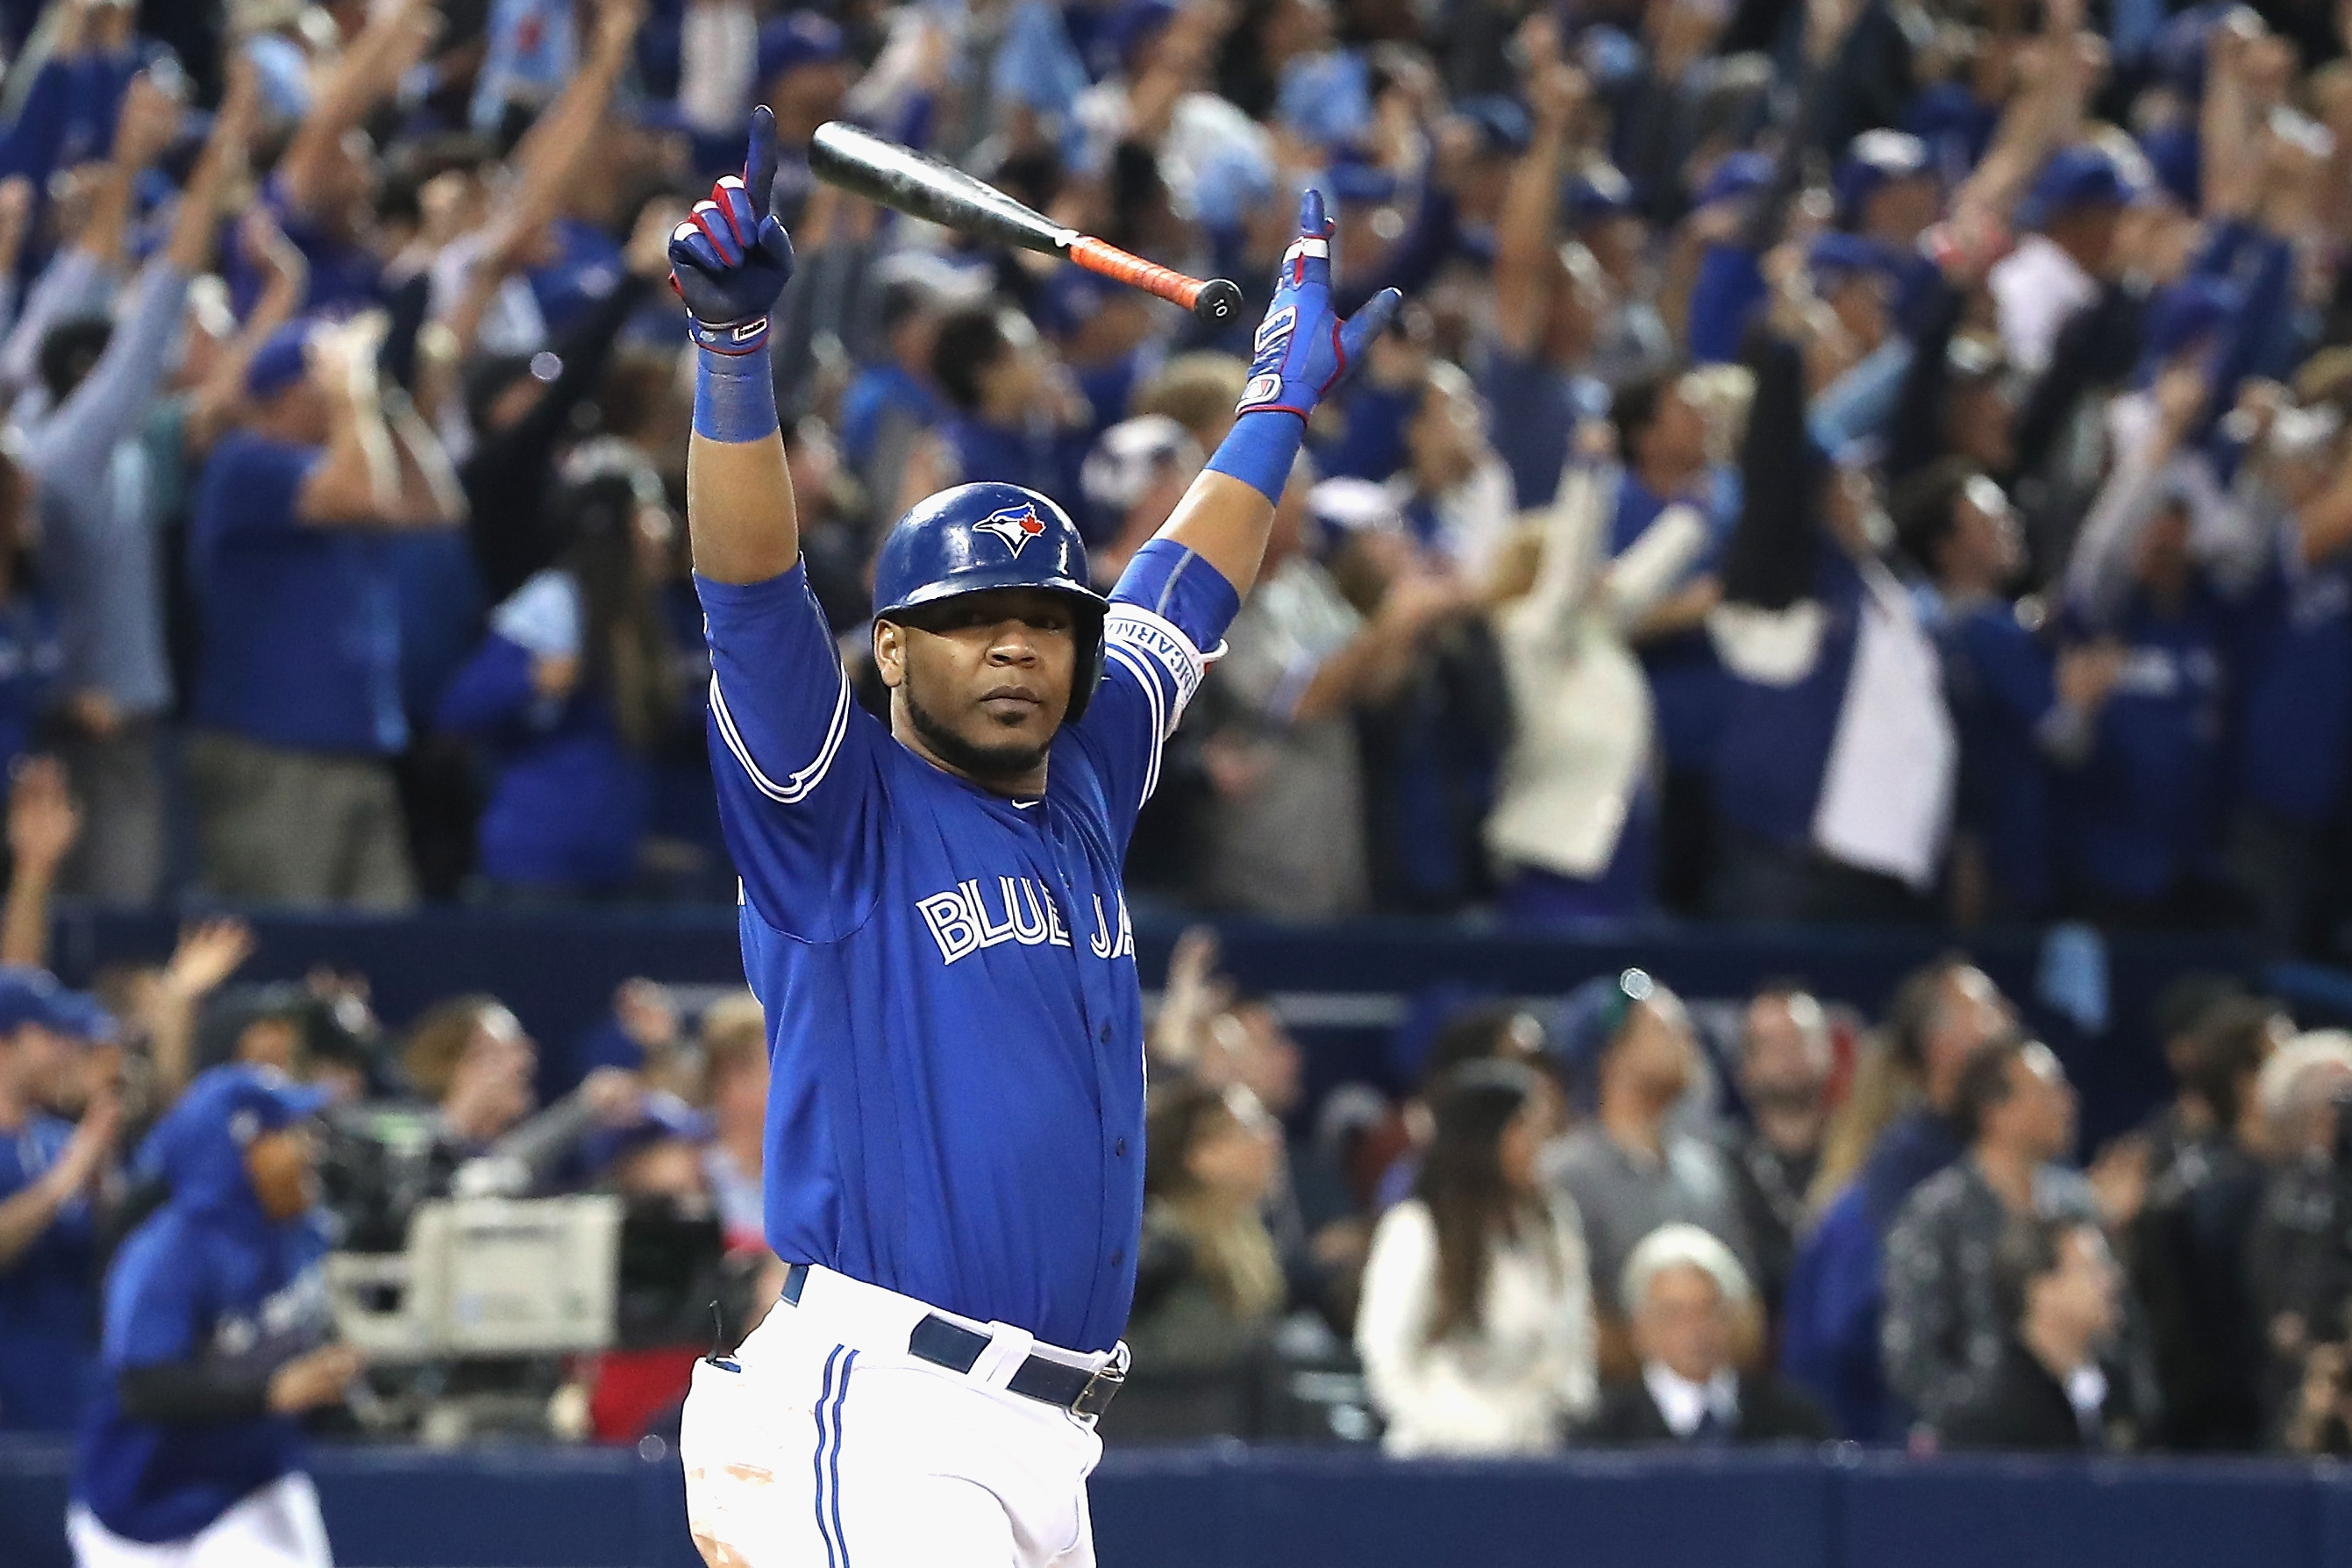 Edwin Encarnacion knows his three-run homer in the 11th inning was the game-winner for the Blue Jays against the Orioles.